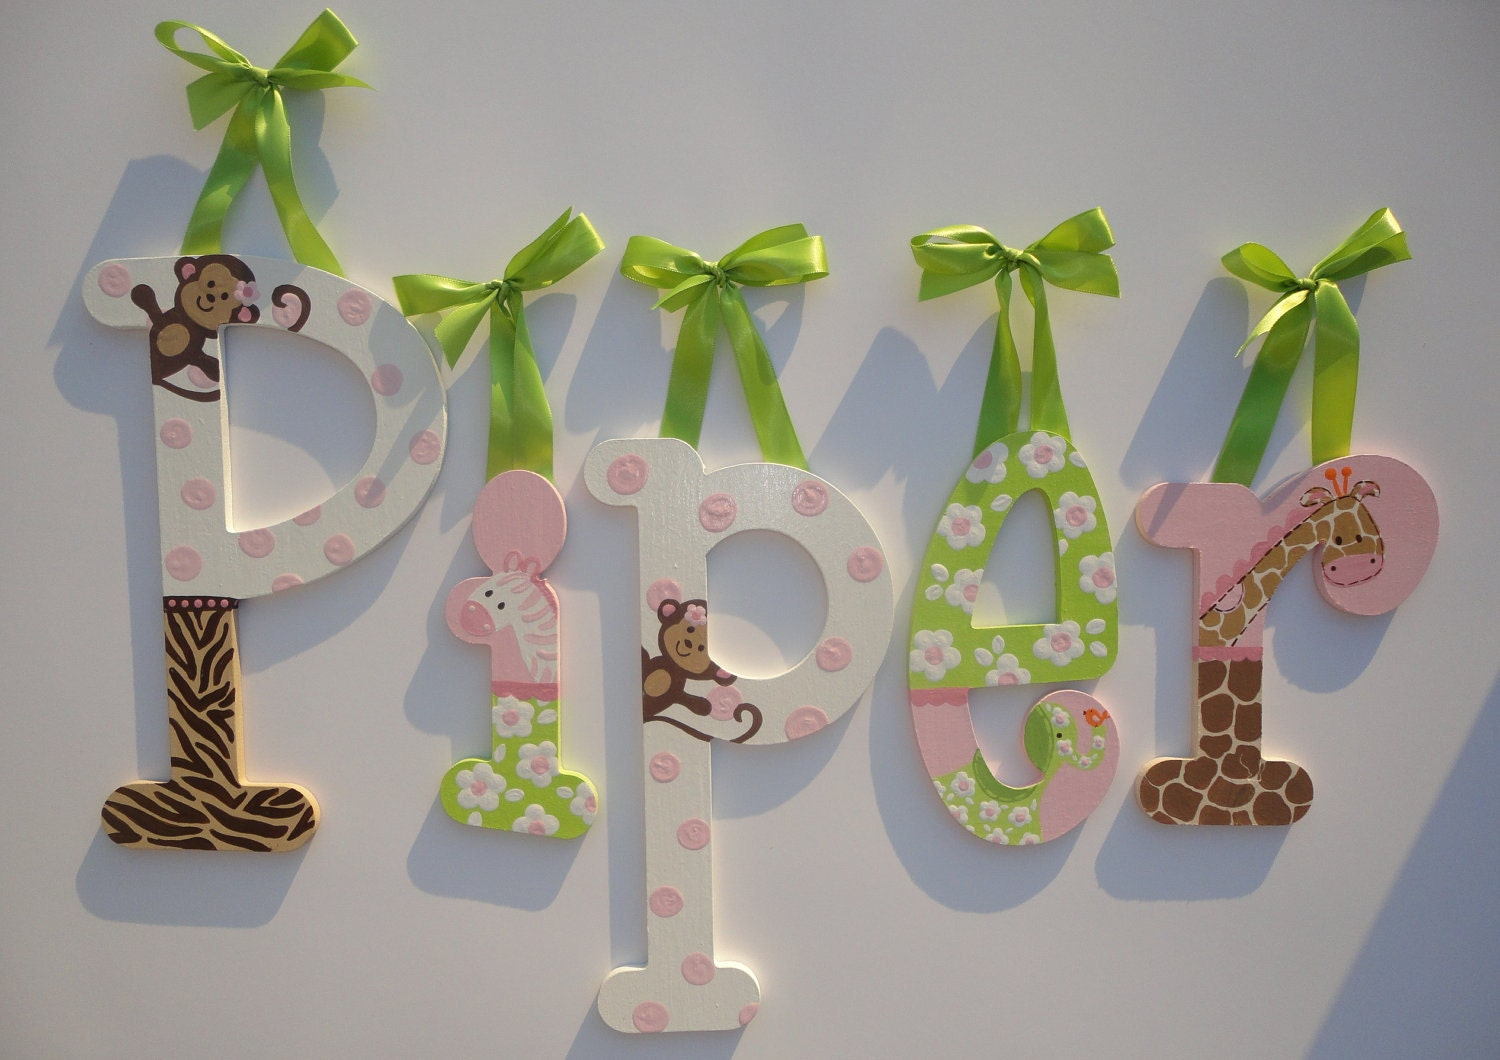 Jungle Jill Wall Decor : Custom hand painted wooden wall letters jungle jill